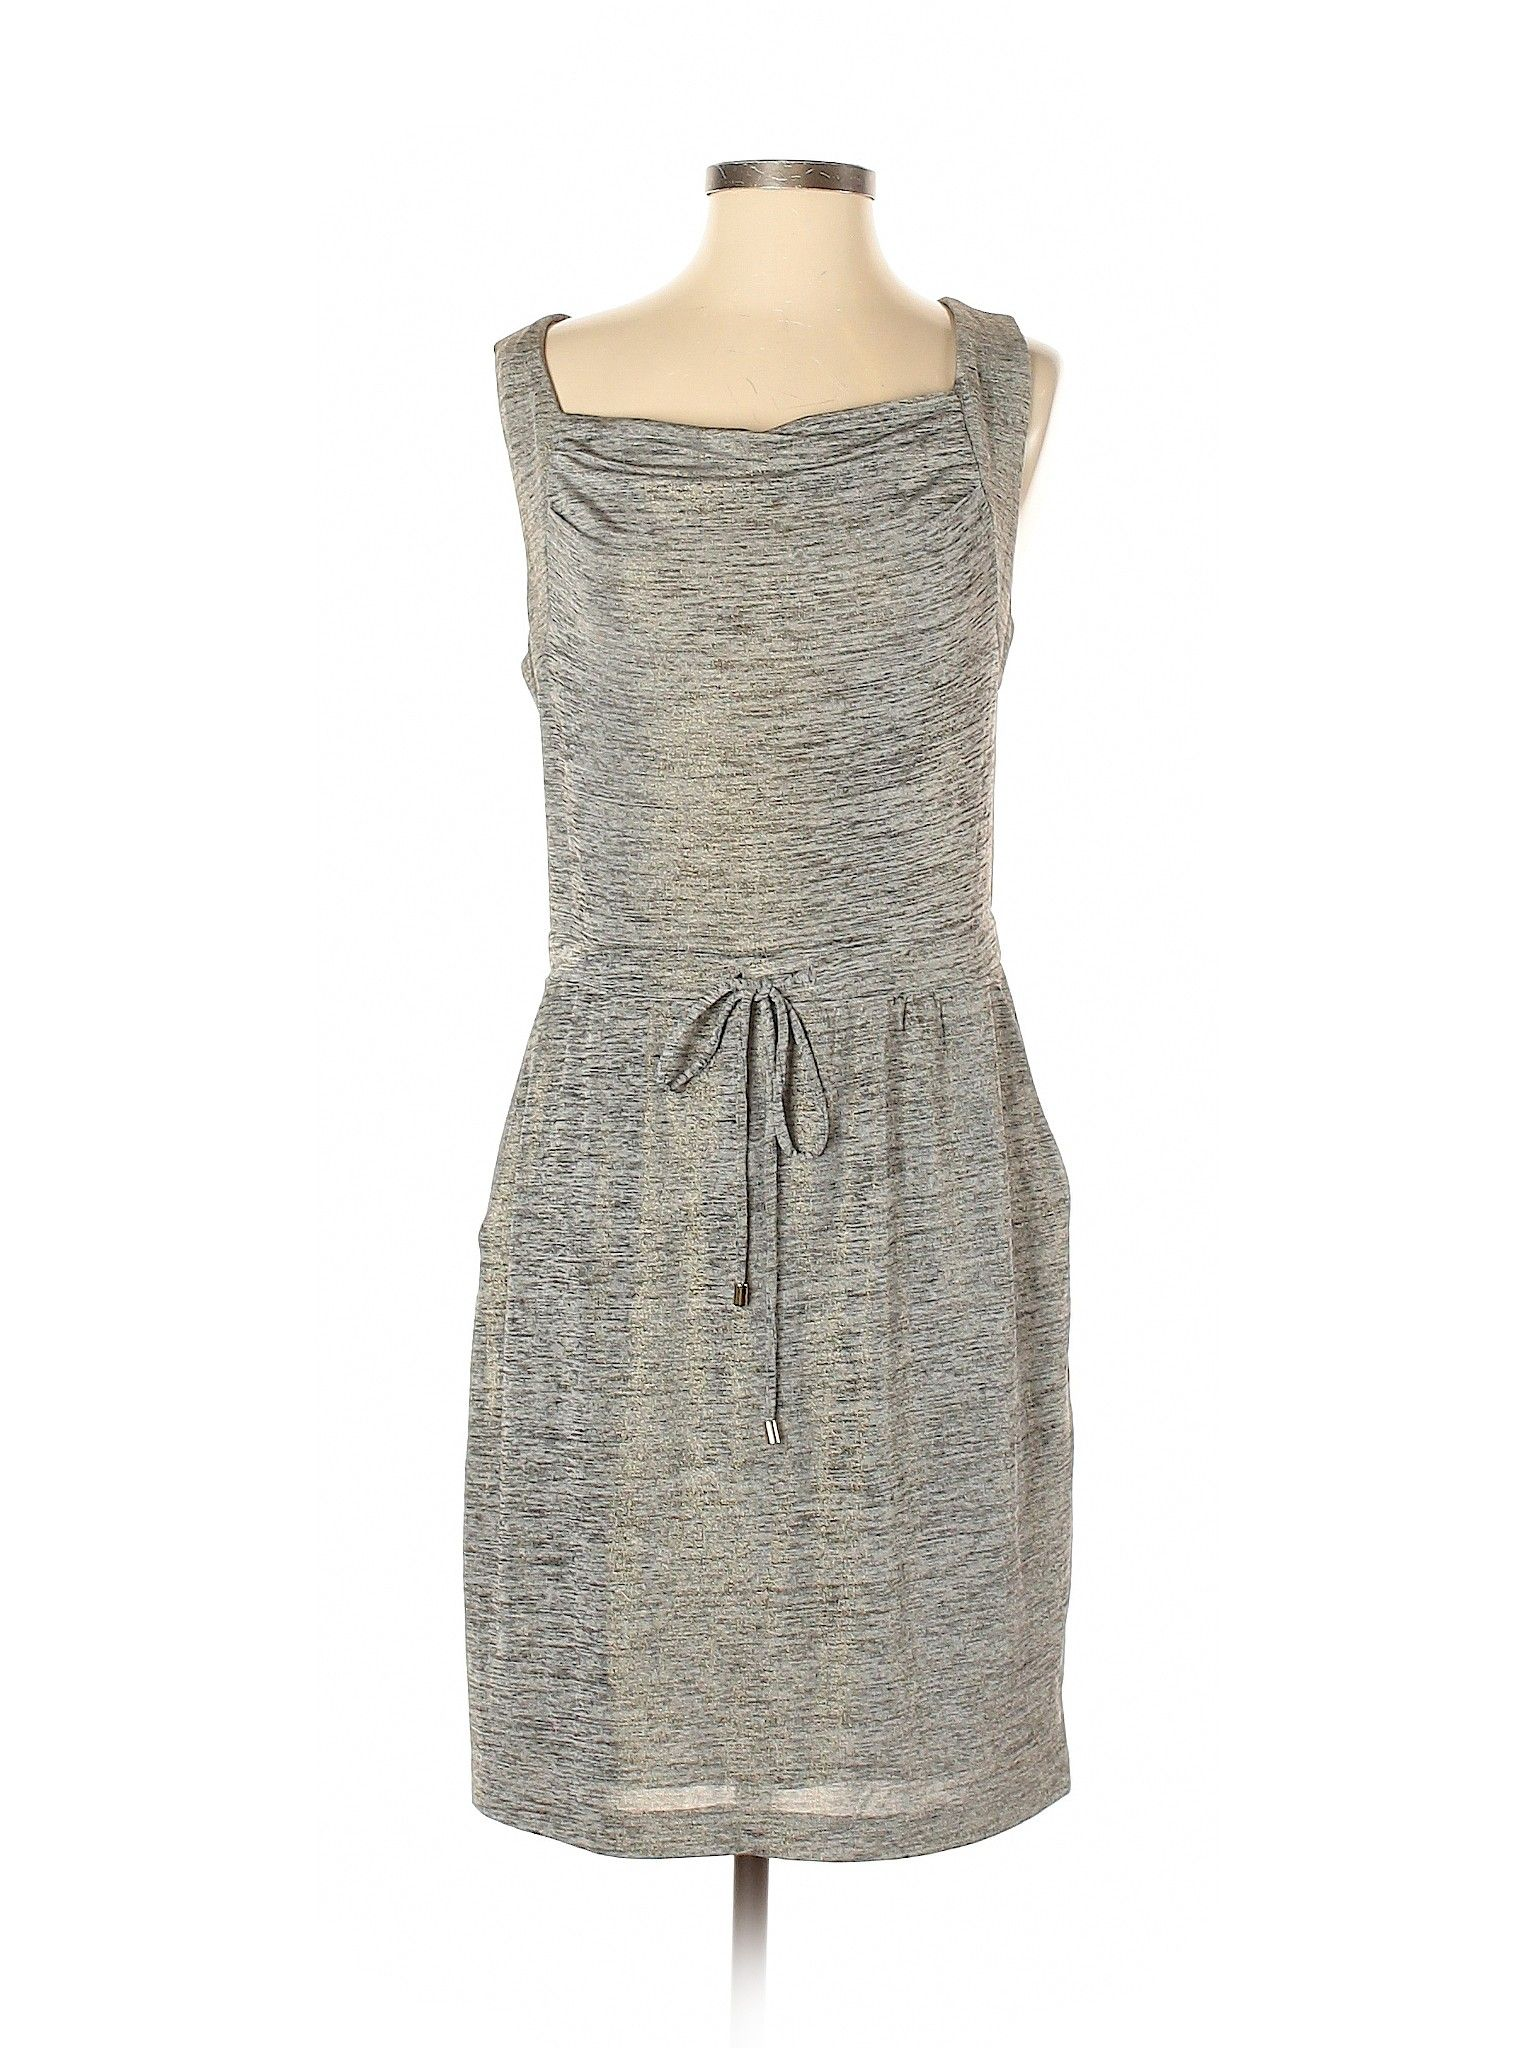 Jennifer Lopez Casual Dress Slip Dress Gray Solid Dresses Used Size Small Casual Dresses Clothes Casual Dress [ 2048 x 1536 Pixel ]